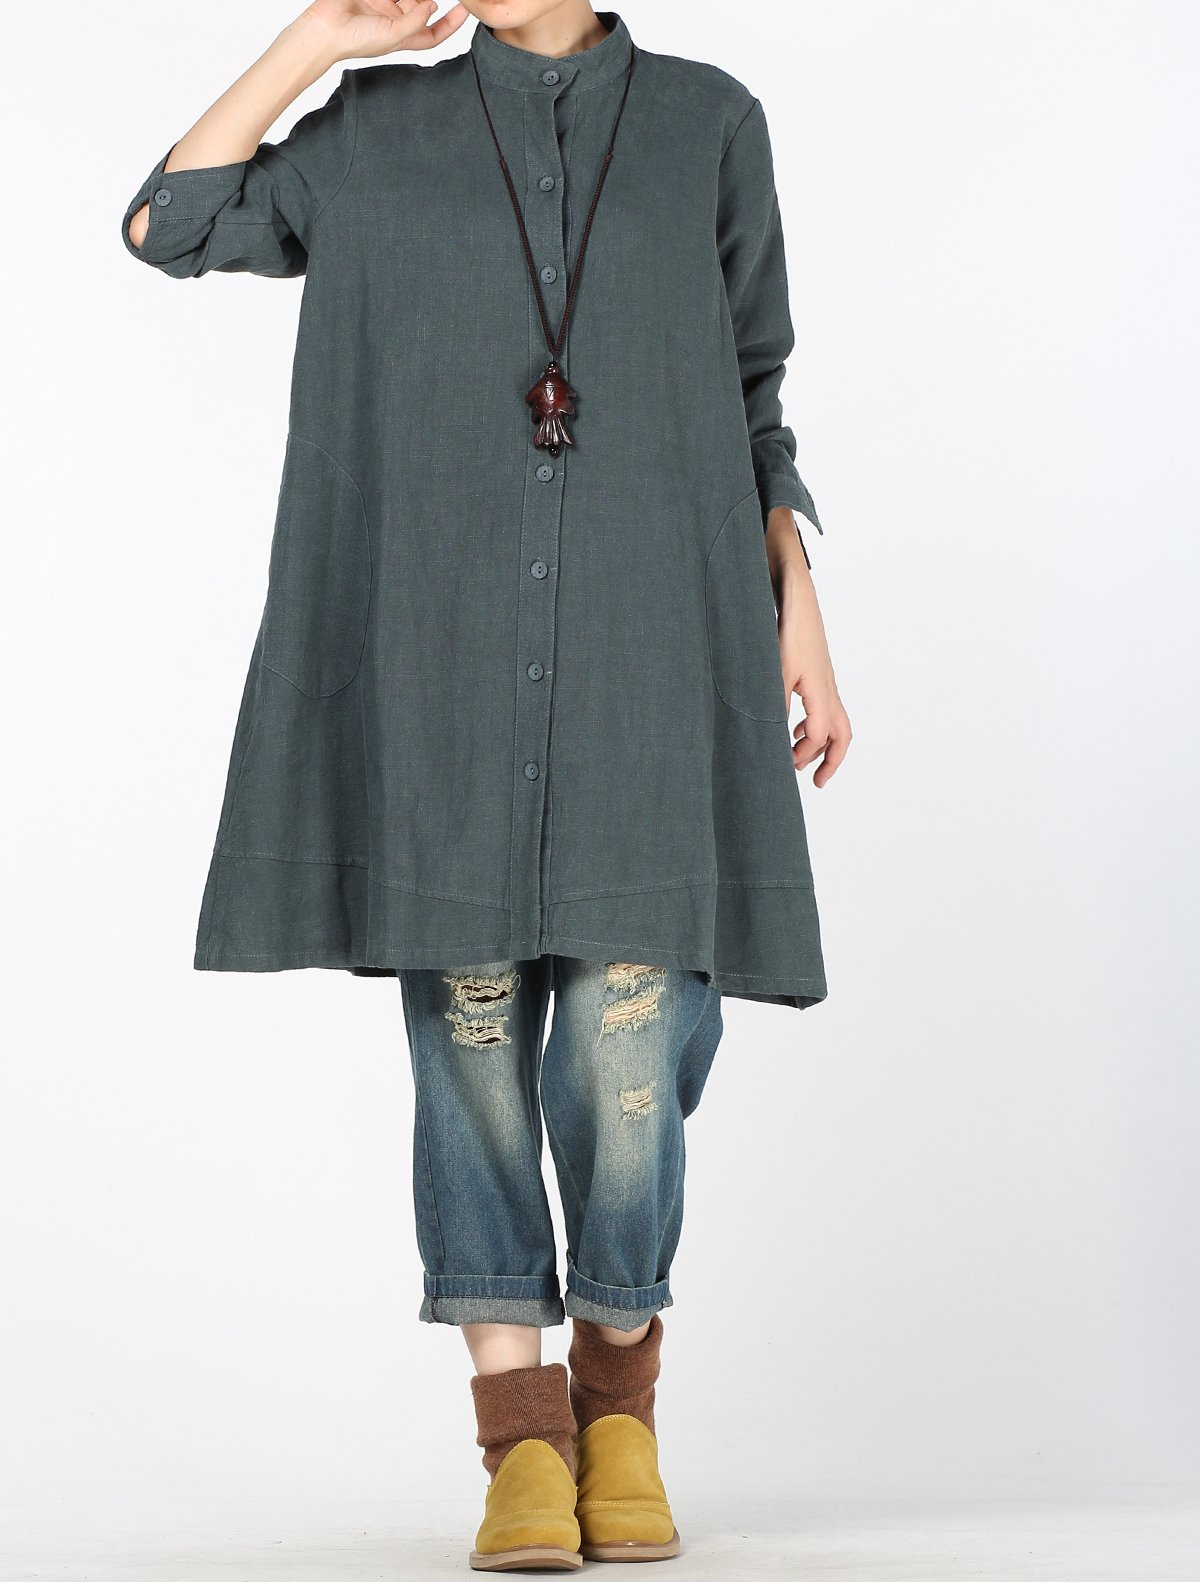 Mordenmiss Women's Cotton Linen Full Front Buttons Jacket Outfit with Pockets Style 1 L Dark Green by Mordenmiss (Image #3)